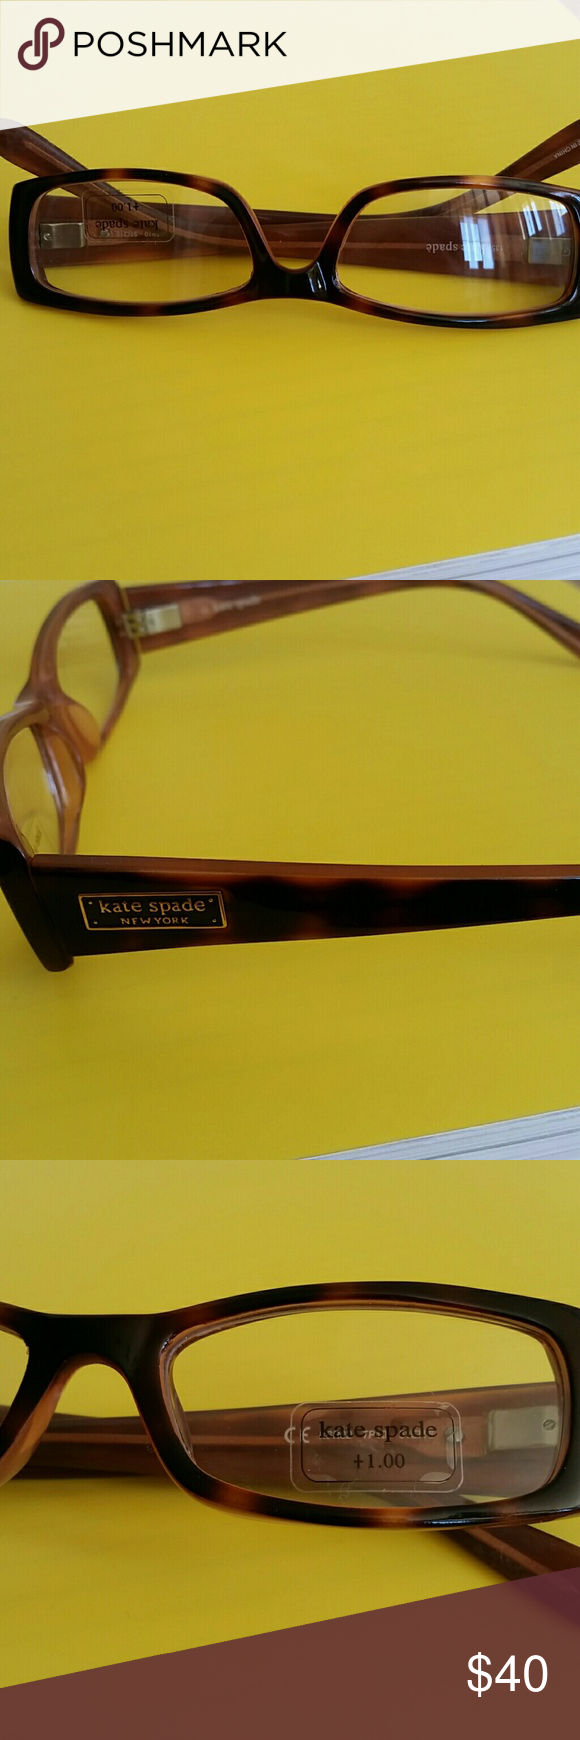 Kate Spade Reading Glasses NWOT beautiful Kate Spade Reading glasses. +1.0. kate spade Accessories Glasses